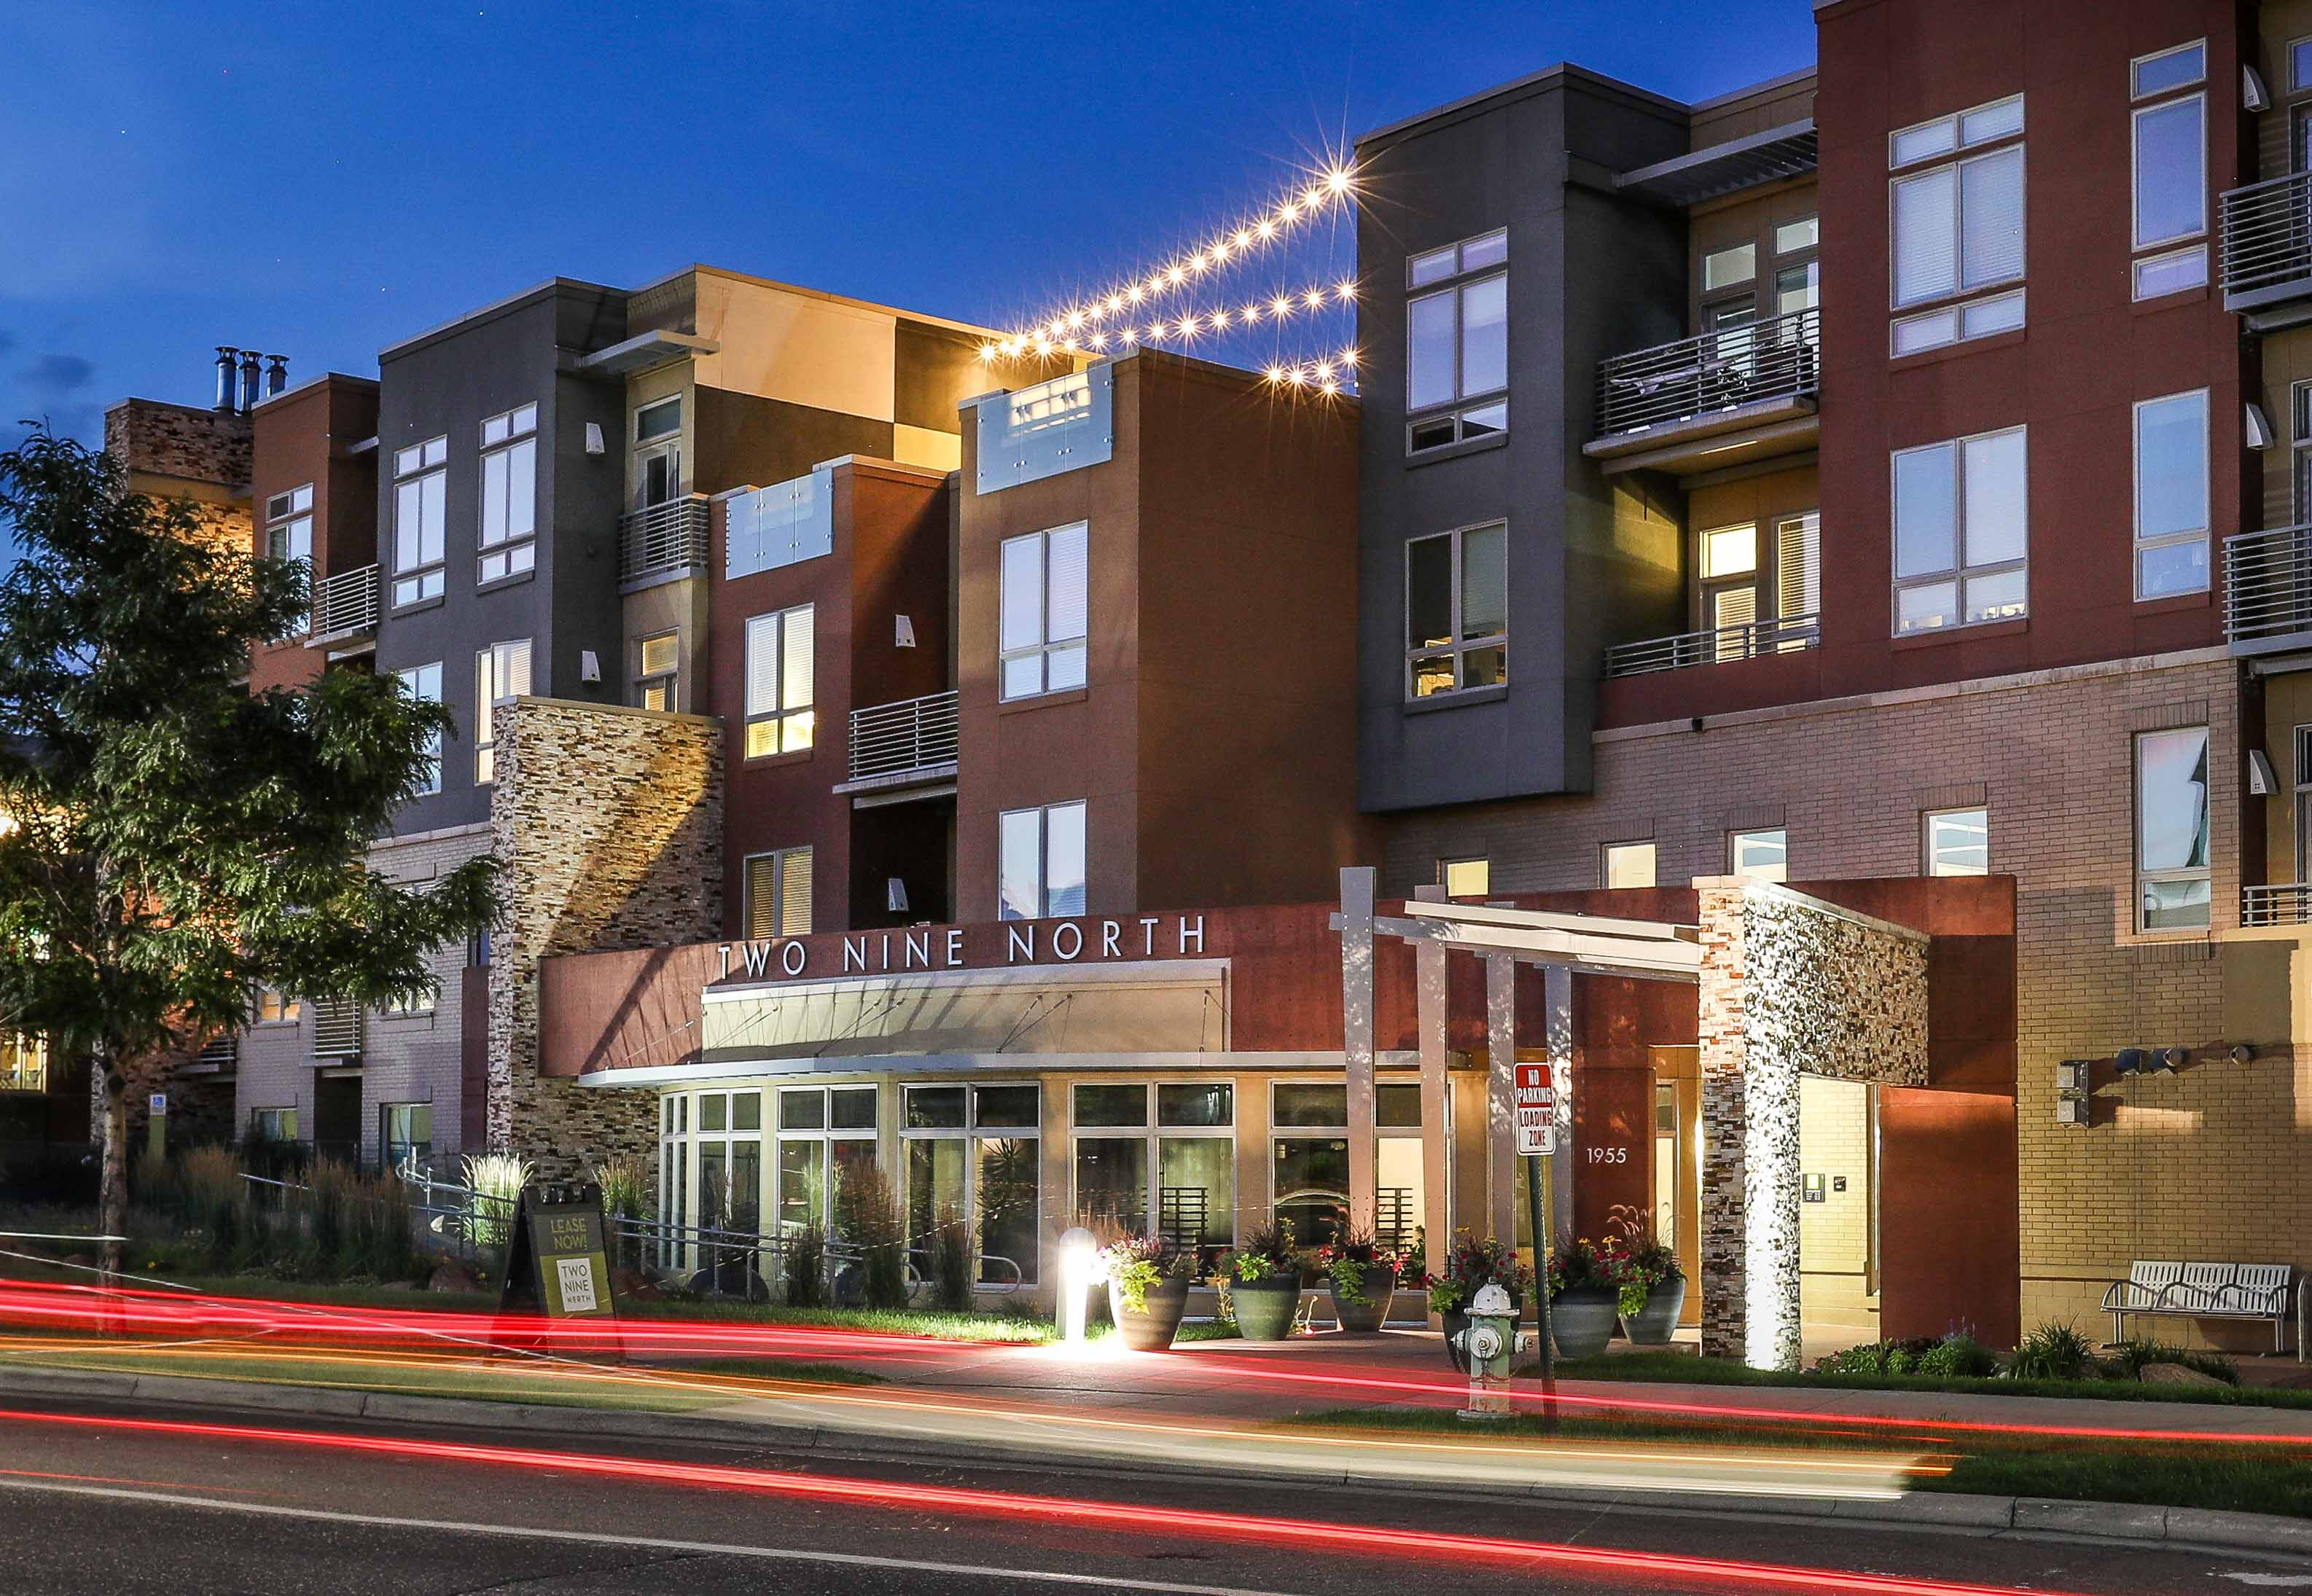 Sensational 20 Best Apartments For Rent In Boulder Co With Pictures Home Interior And Landscaping Palasignezvosmurscom